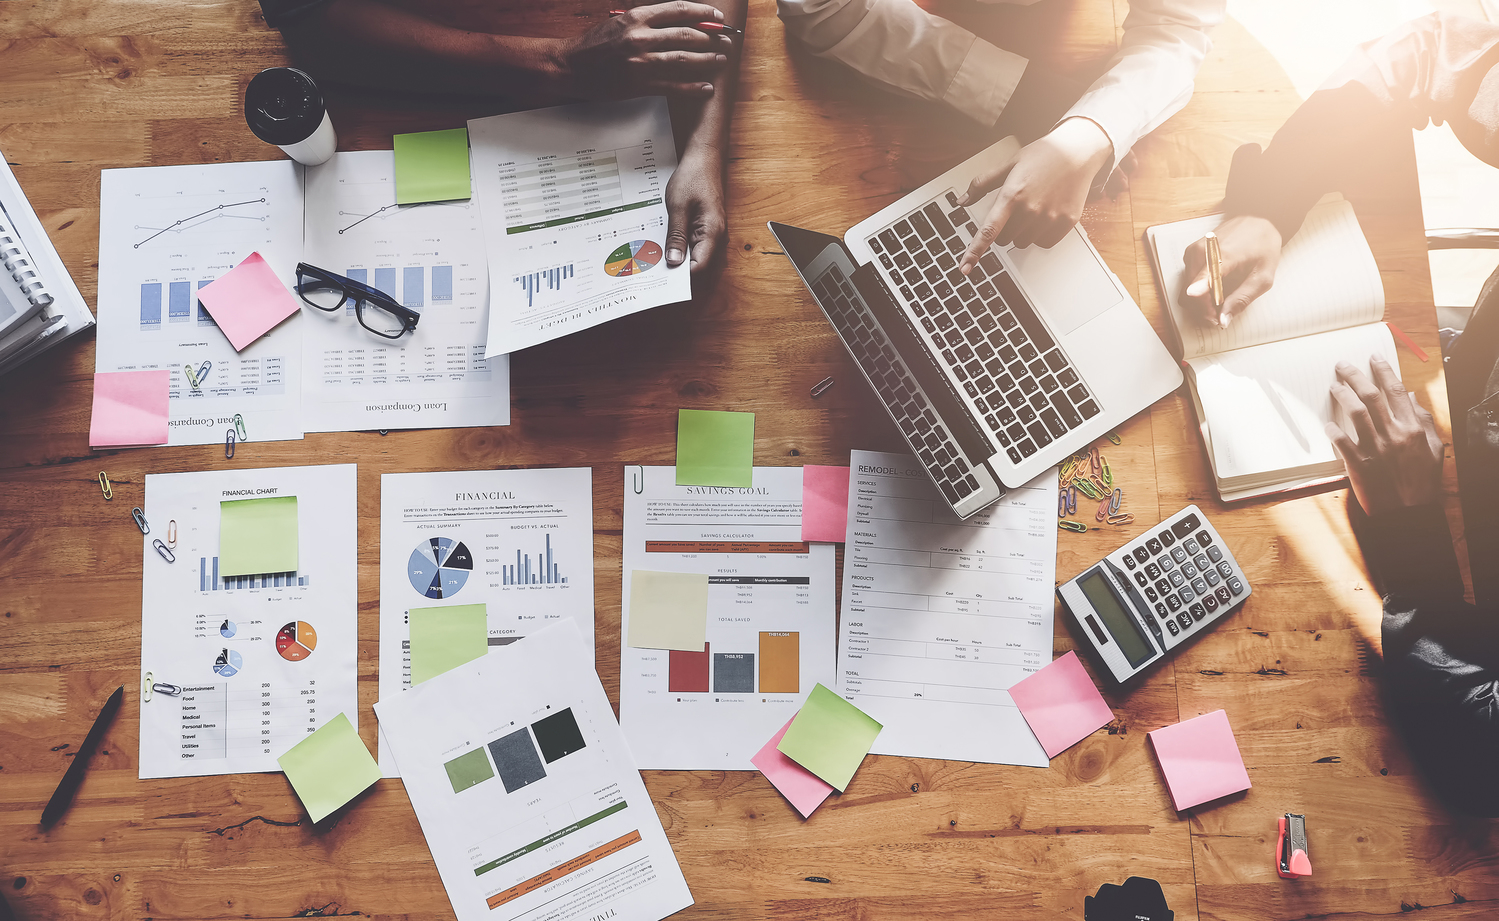 20 Useful Tools for Conducting Market Research